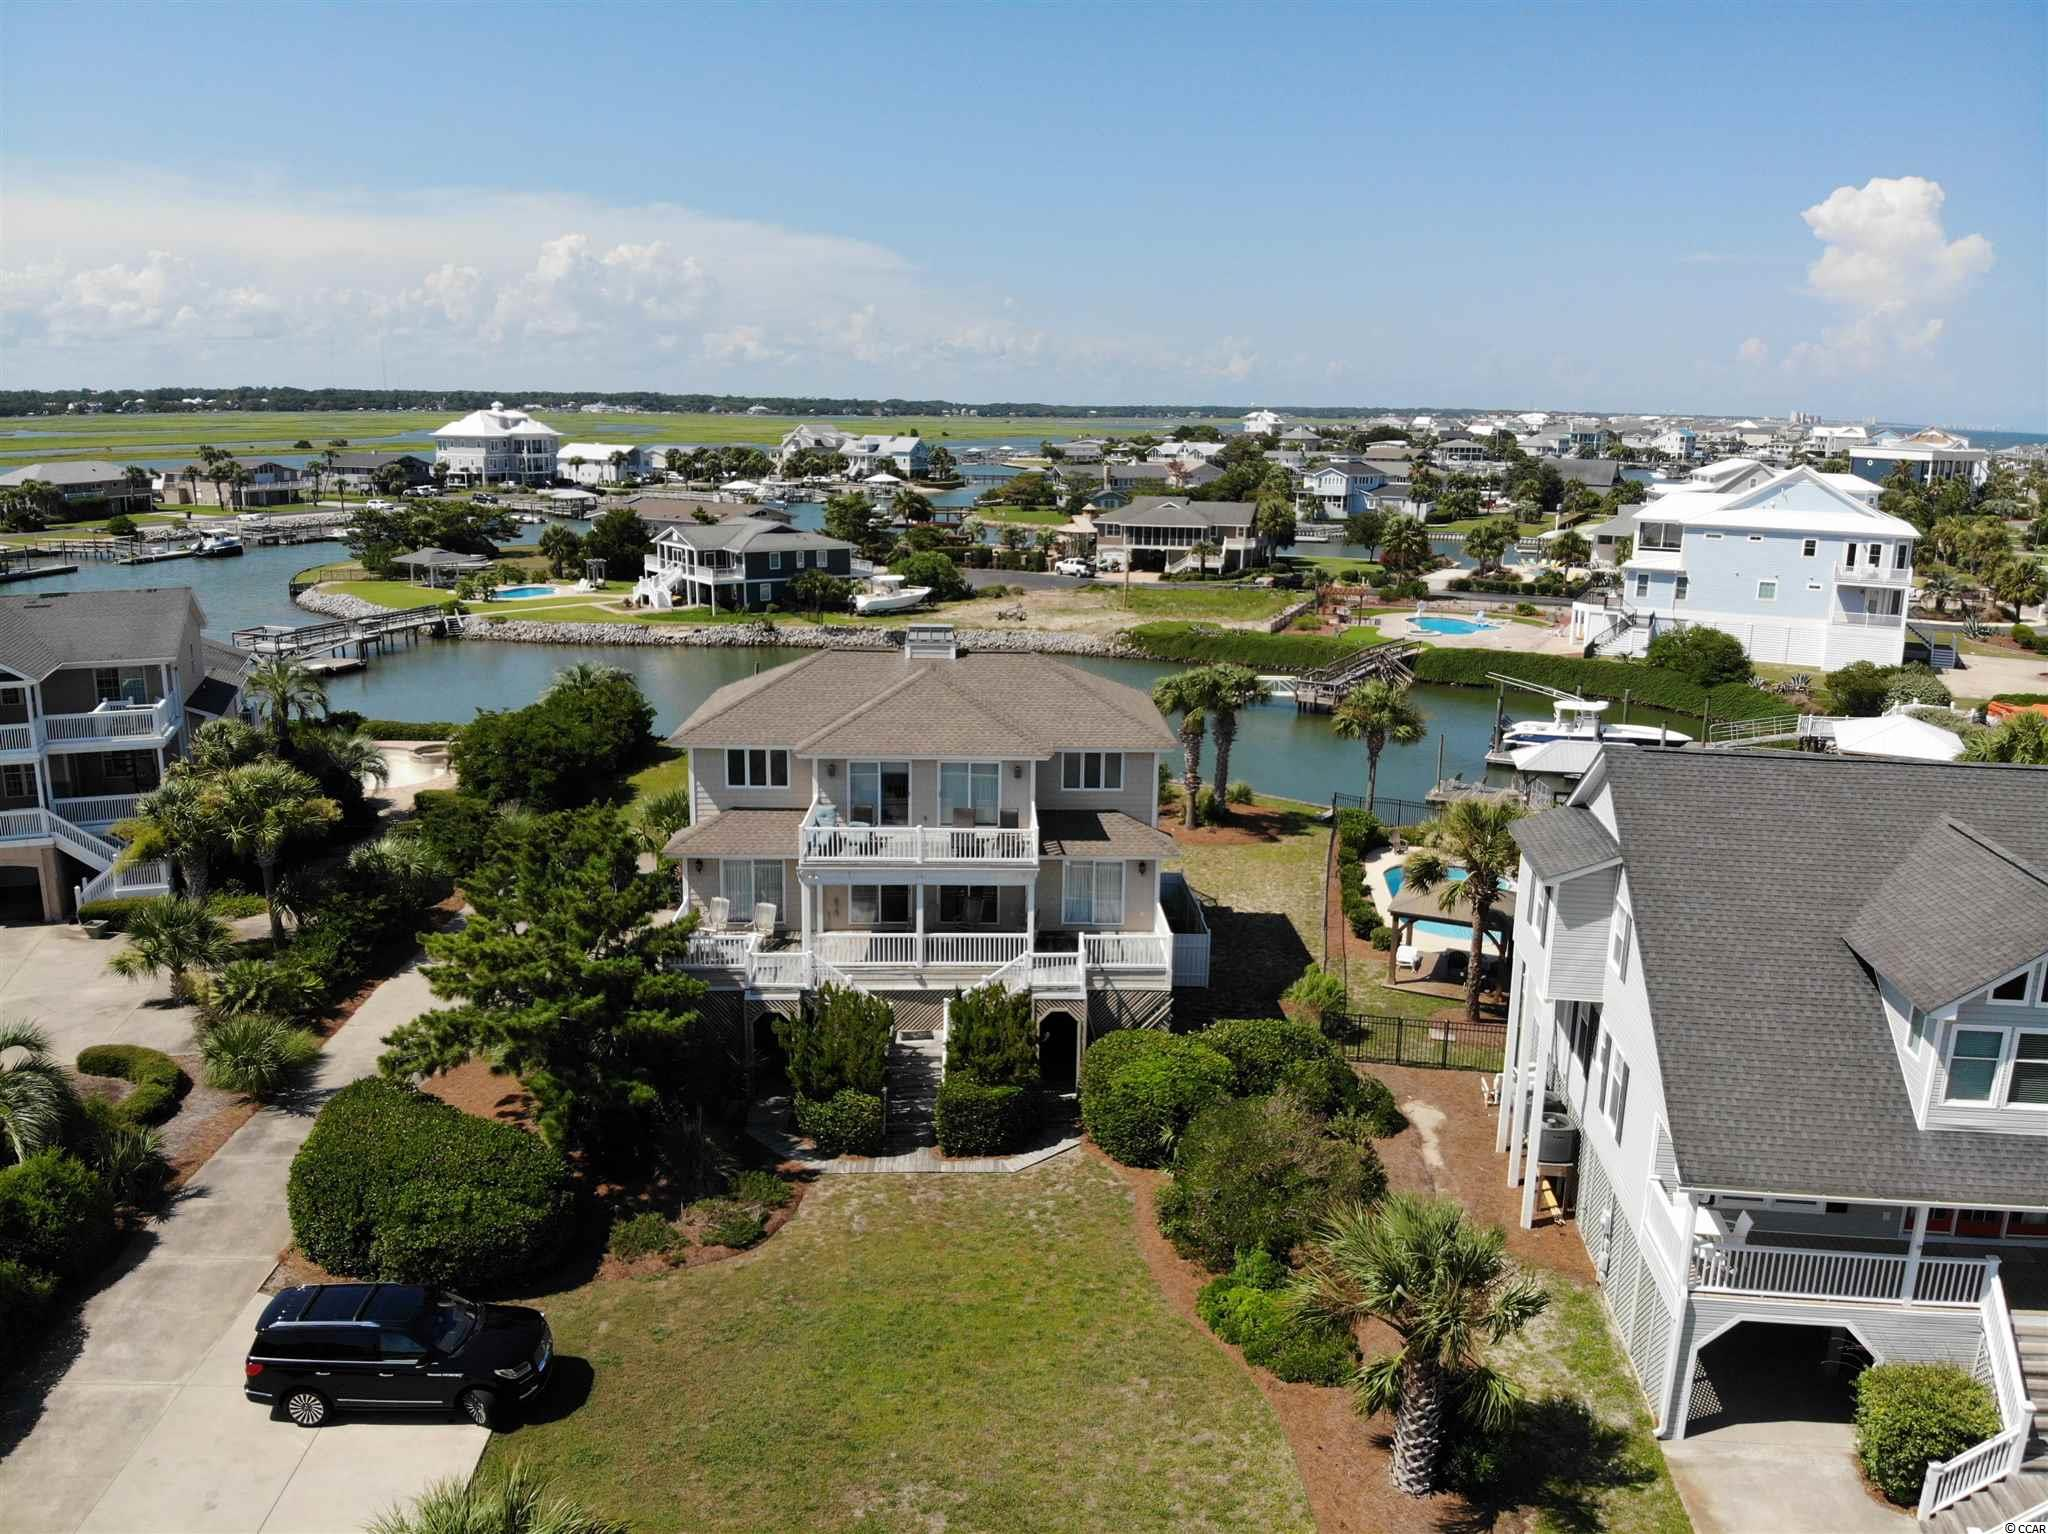 """""""Sand By Me"""" is a 5BR/4.5BA home located in the very southern gated community of Garden City Beach known as Inlet Harbour.  This particular beach home overlooks an undeveloped oceanfront portion of Inlet Harbour and out to the Murrells Inlet Jetties.  It features a private heated pool, private boat dock, covered outdoor kitchen & bar, two separate living areas and expansive views of the ocean and inlet from the two second floor balconies.  Given the location and amenities, this home has a great rental history.  Contact the listing agent, or your Realtor, for more information or to set up a private showing.  Please check out the Matterport 3-D Virtual Tour! https://my.matterport.com/show/?m=MZguGCQkz4Y&mls=1"""